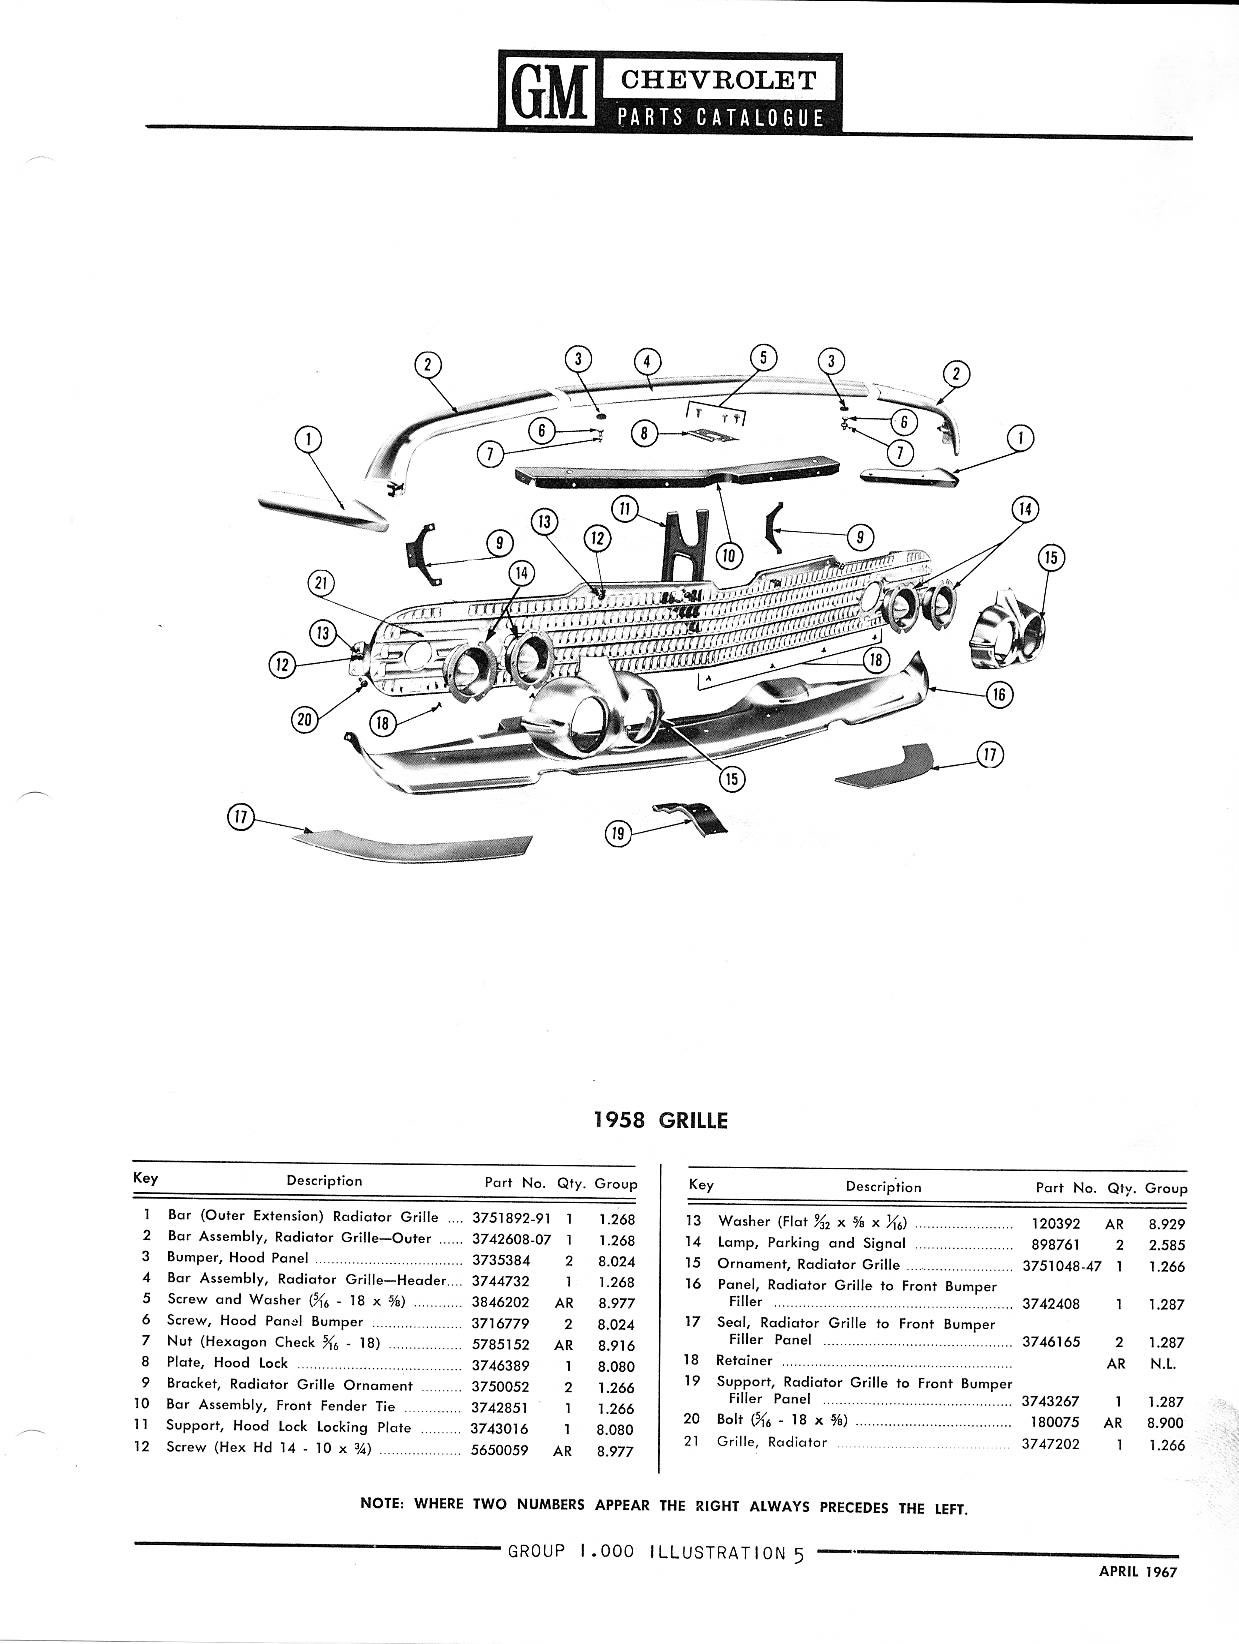 1933 Ford Truck Parts Diagram besides 1958 Cadillac Fuel Filter further 1947 1955 Air Filter likewise 1935 Chevy Parts Catalog also Ma9835. on 1934 chevy parts catalog